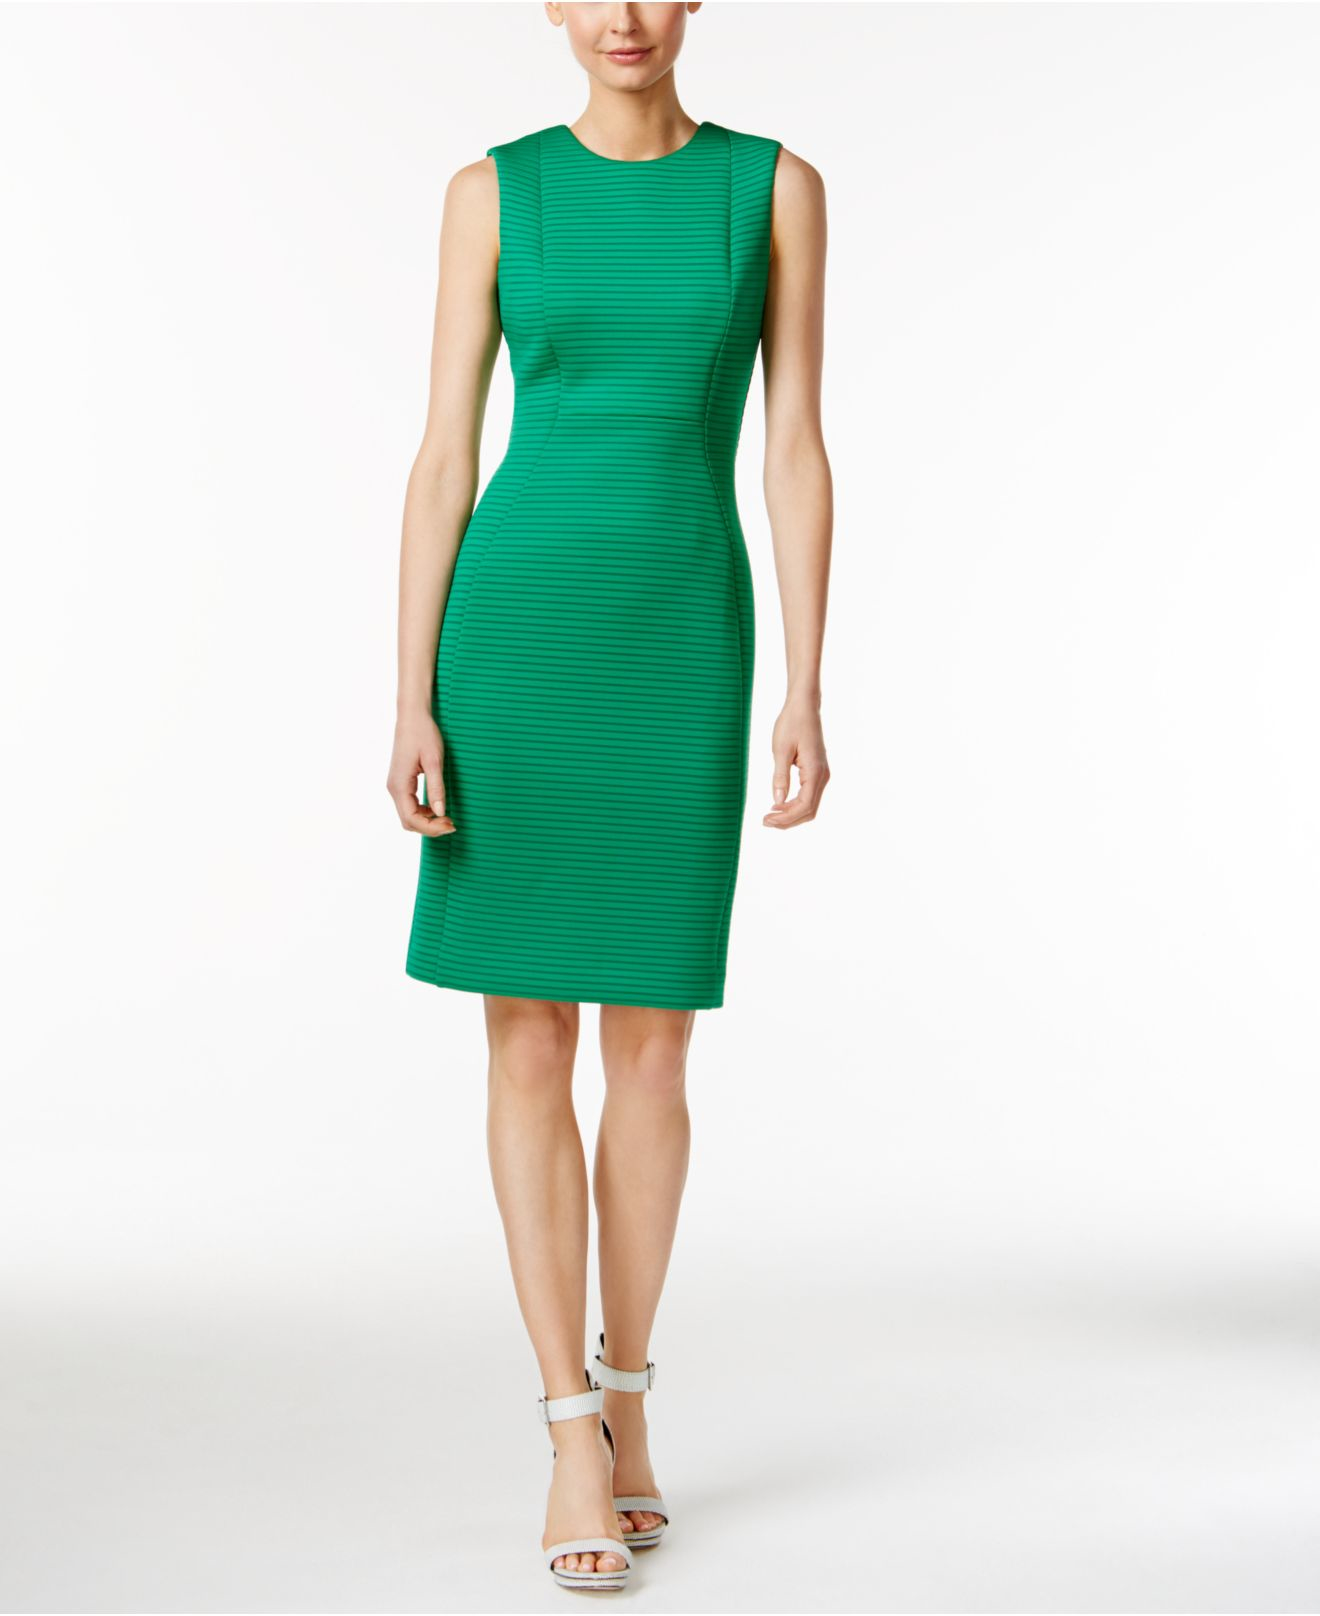 af23706a45a6f6 Lyst - Calvin Klein Sleeveless Striped Sheath Dress in Green